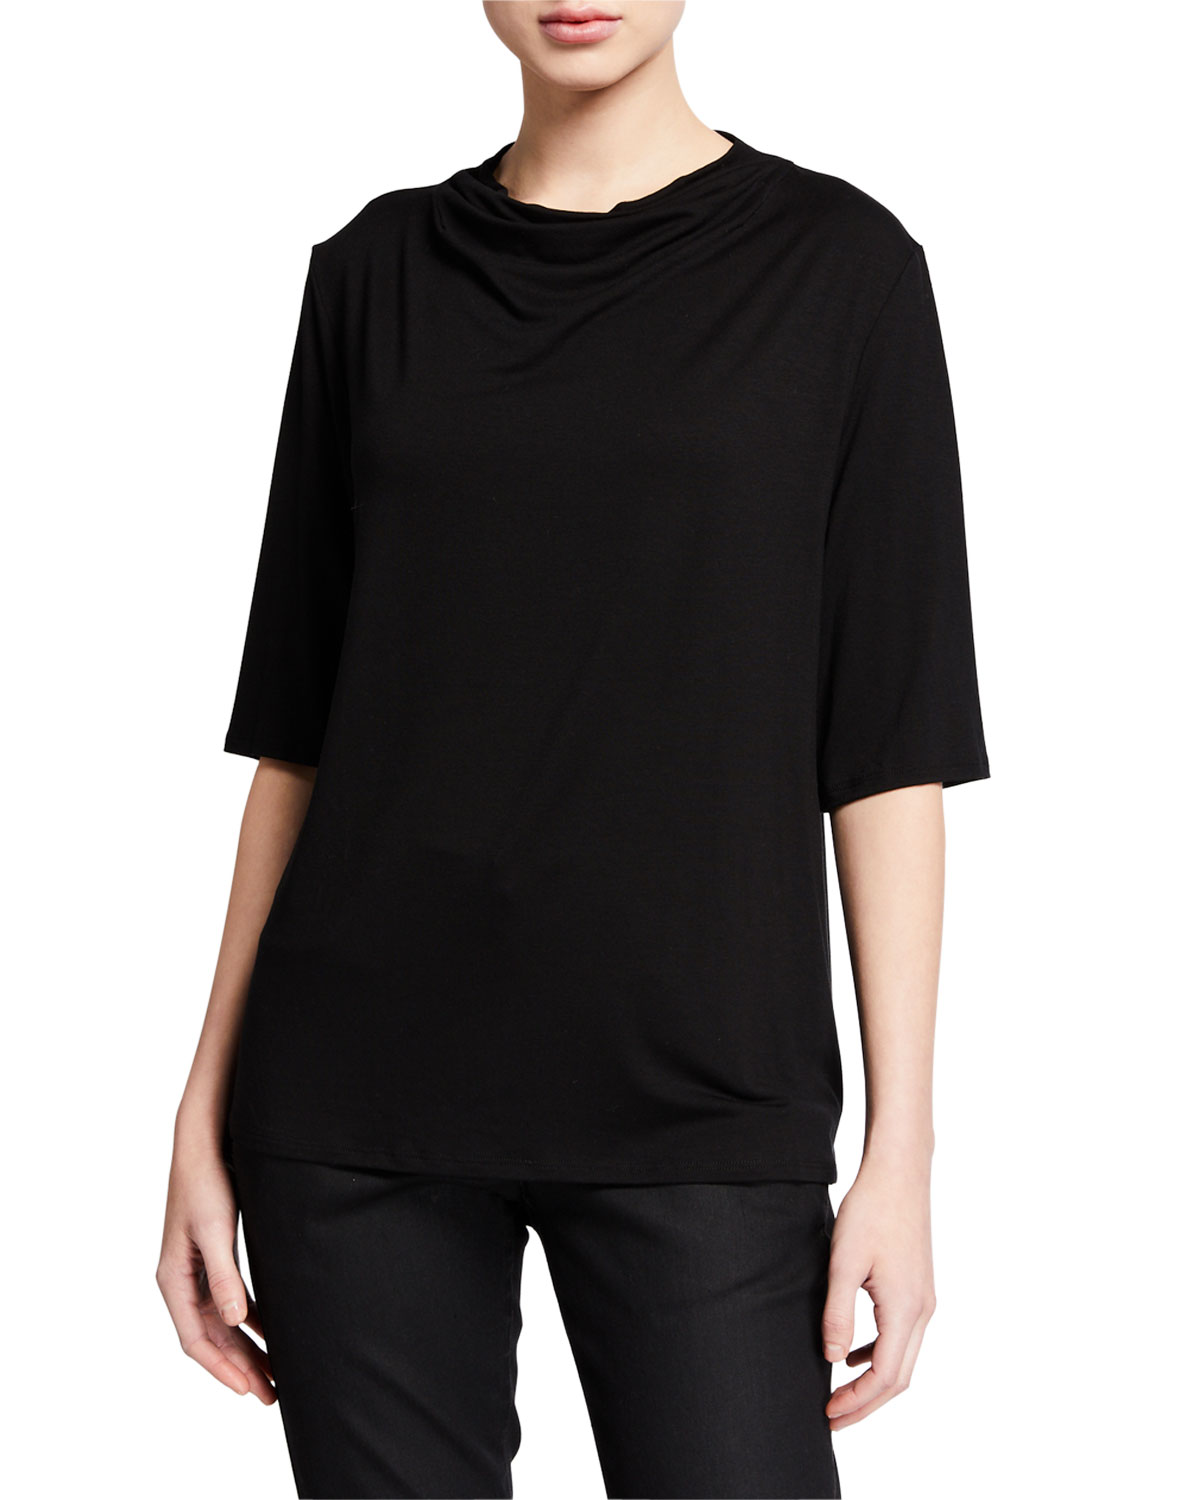 Eileen Fisher Tops PETITE DRAPE-NECK ELBOW-SLEEVE LYOCELL JERSEY TOP